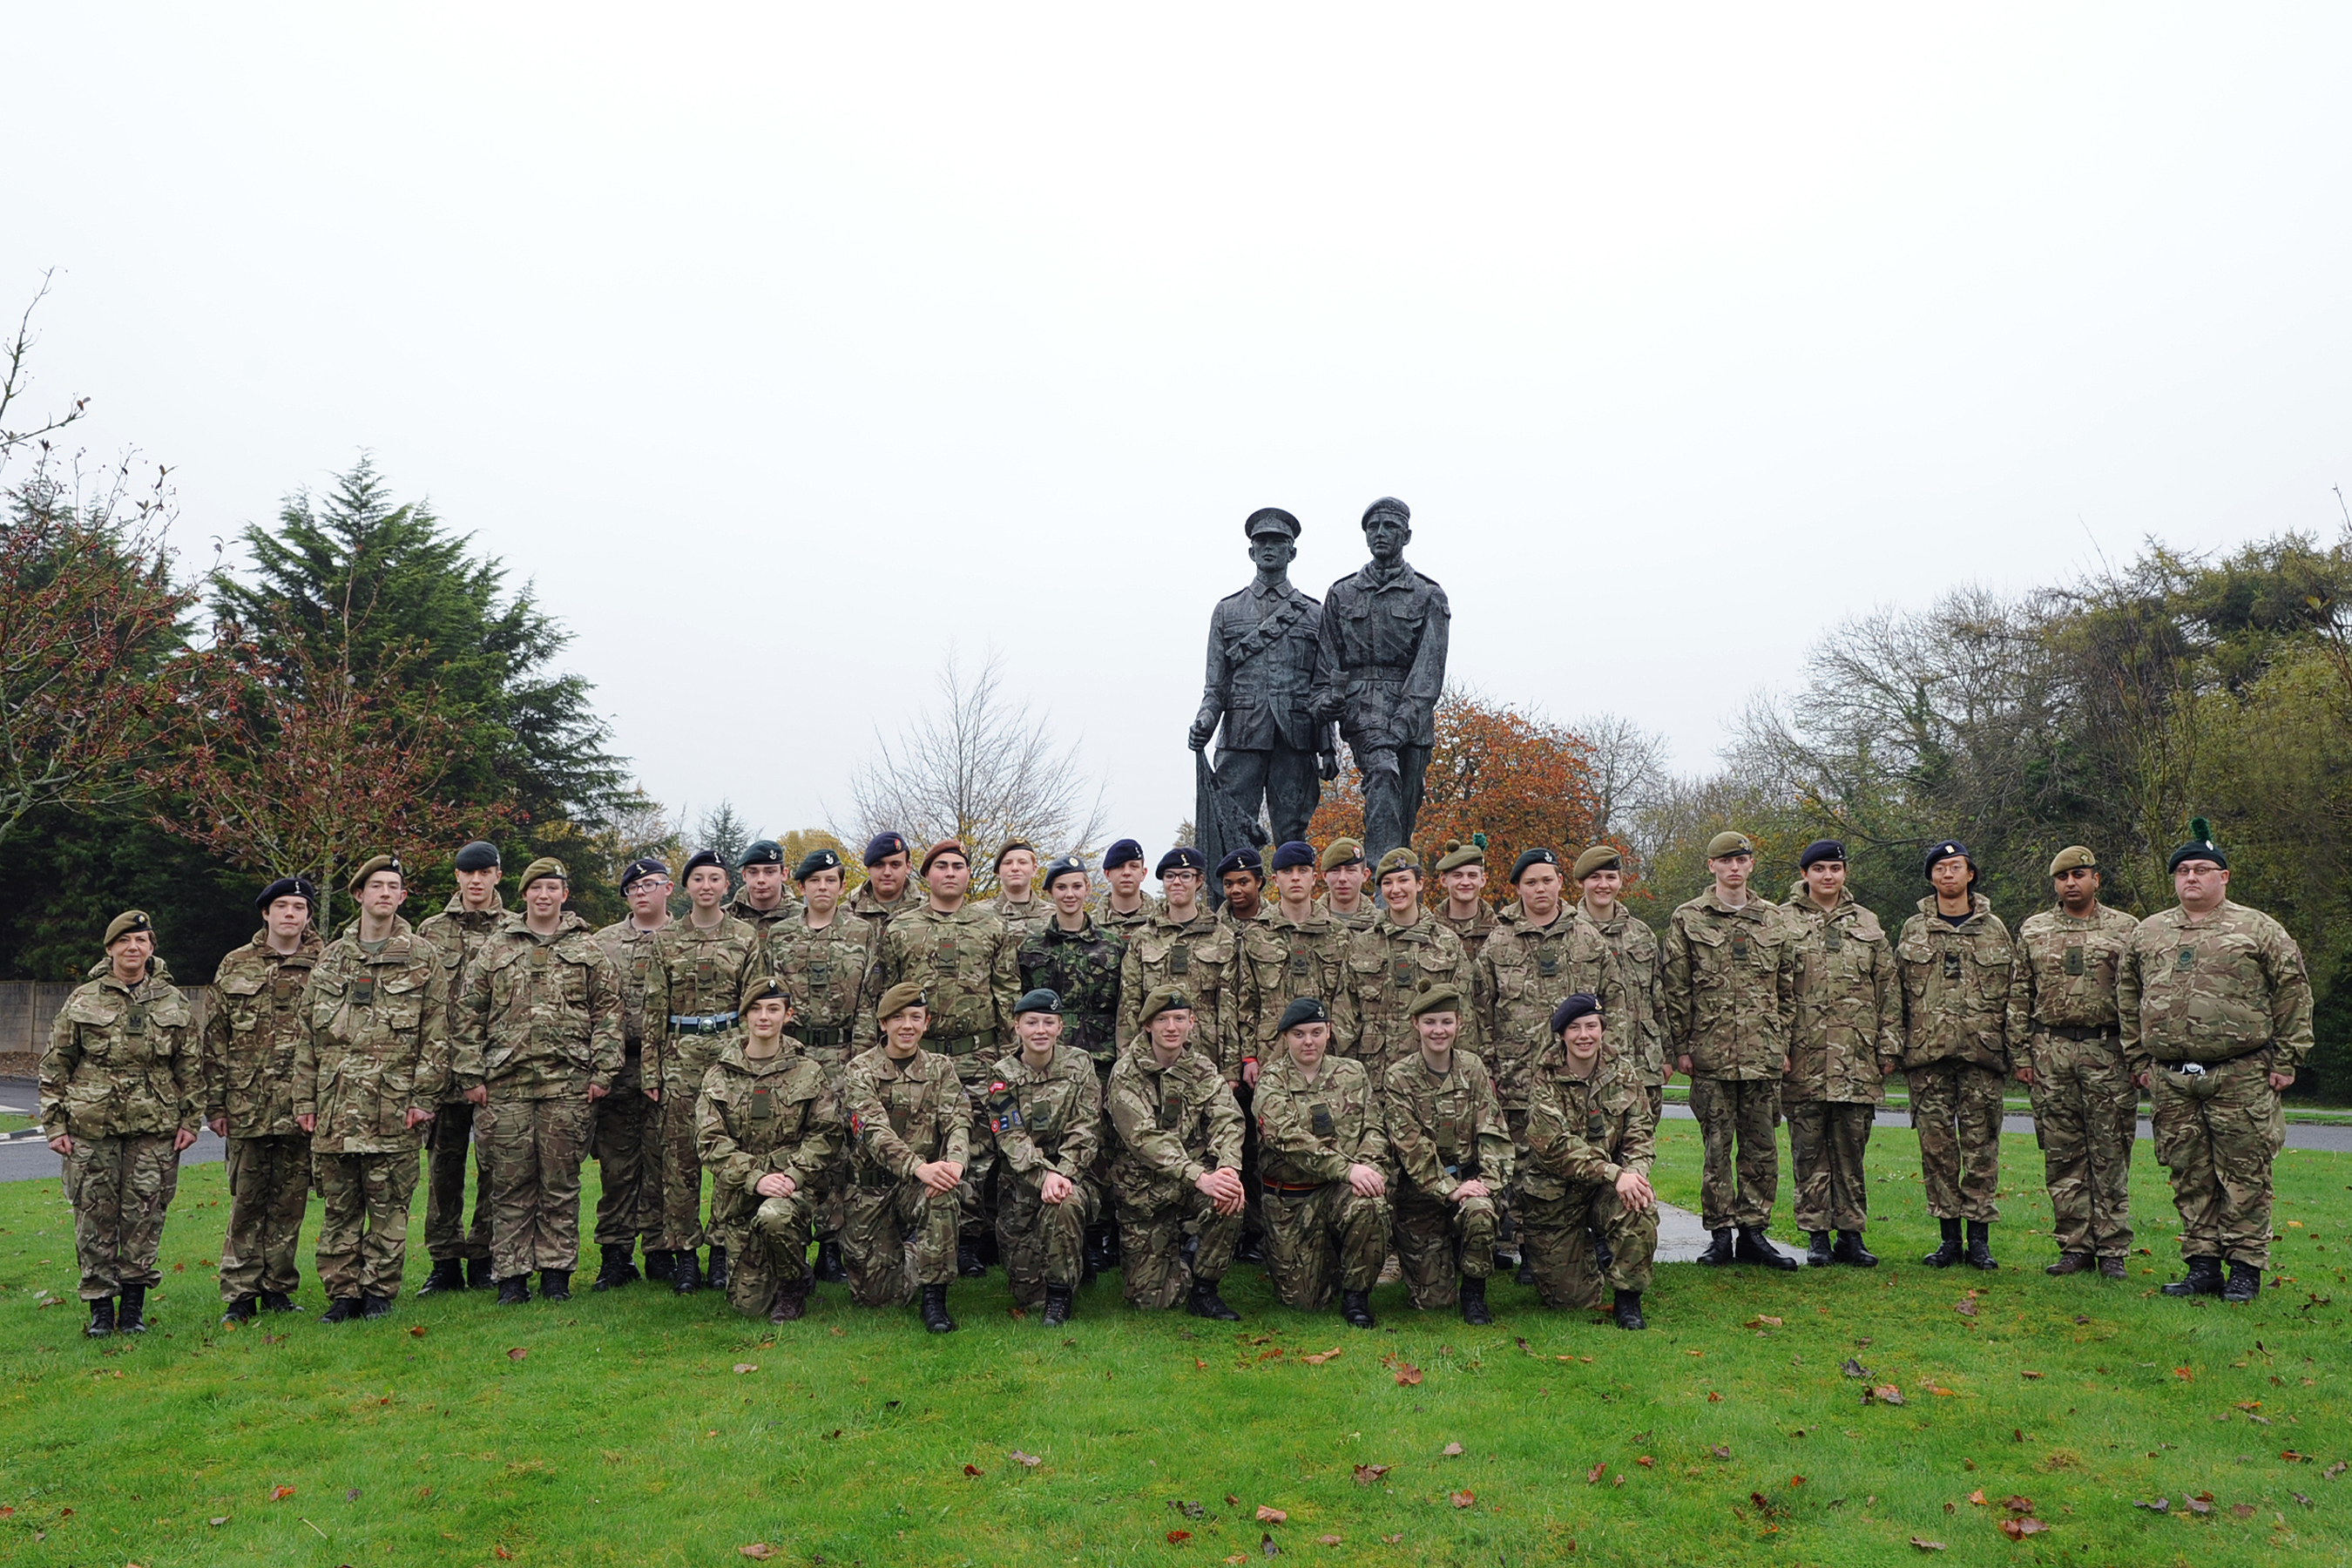 Cadet Signaller Course Photo - October 2014